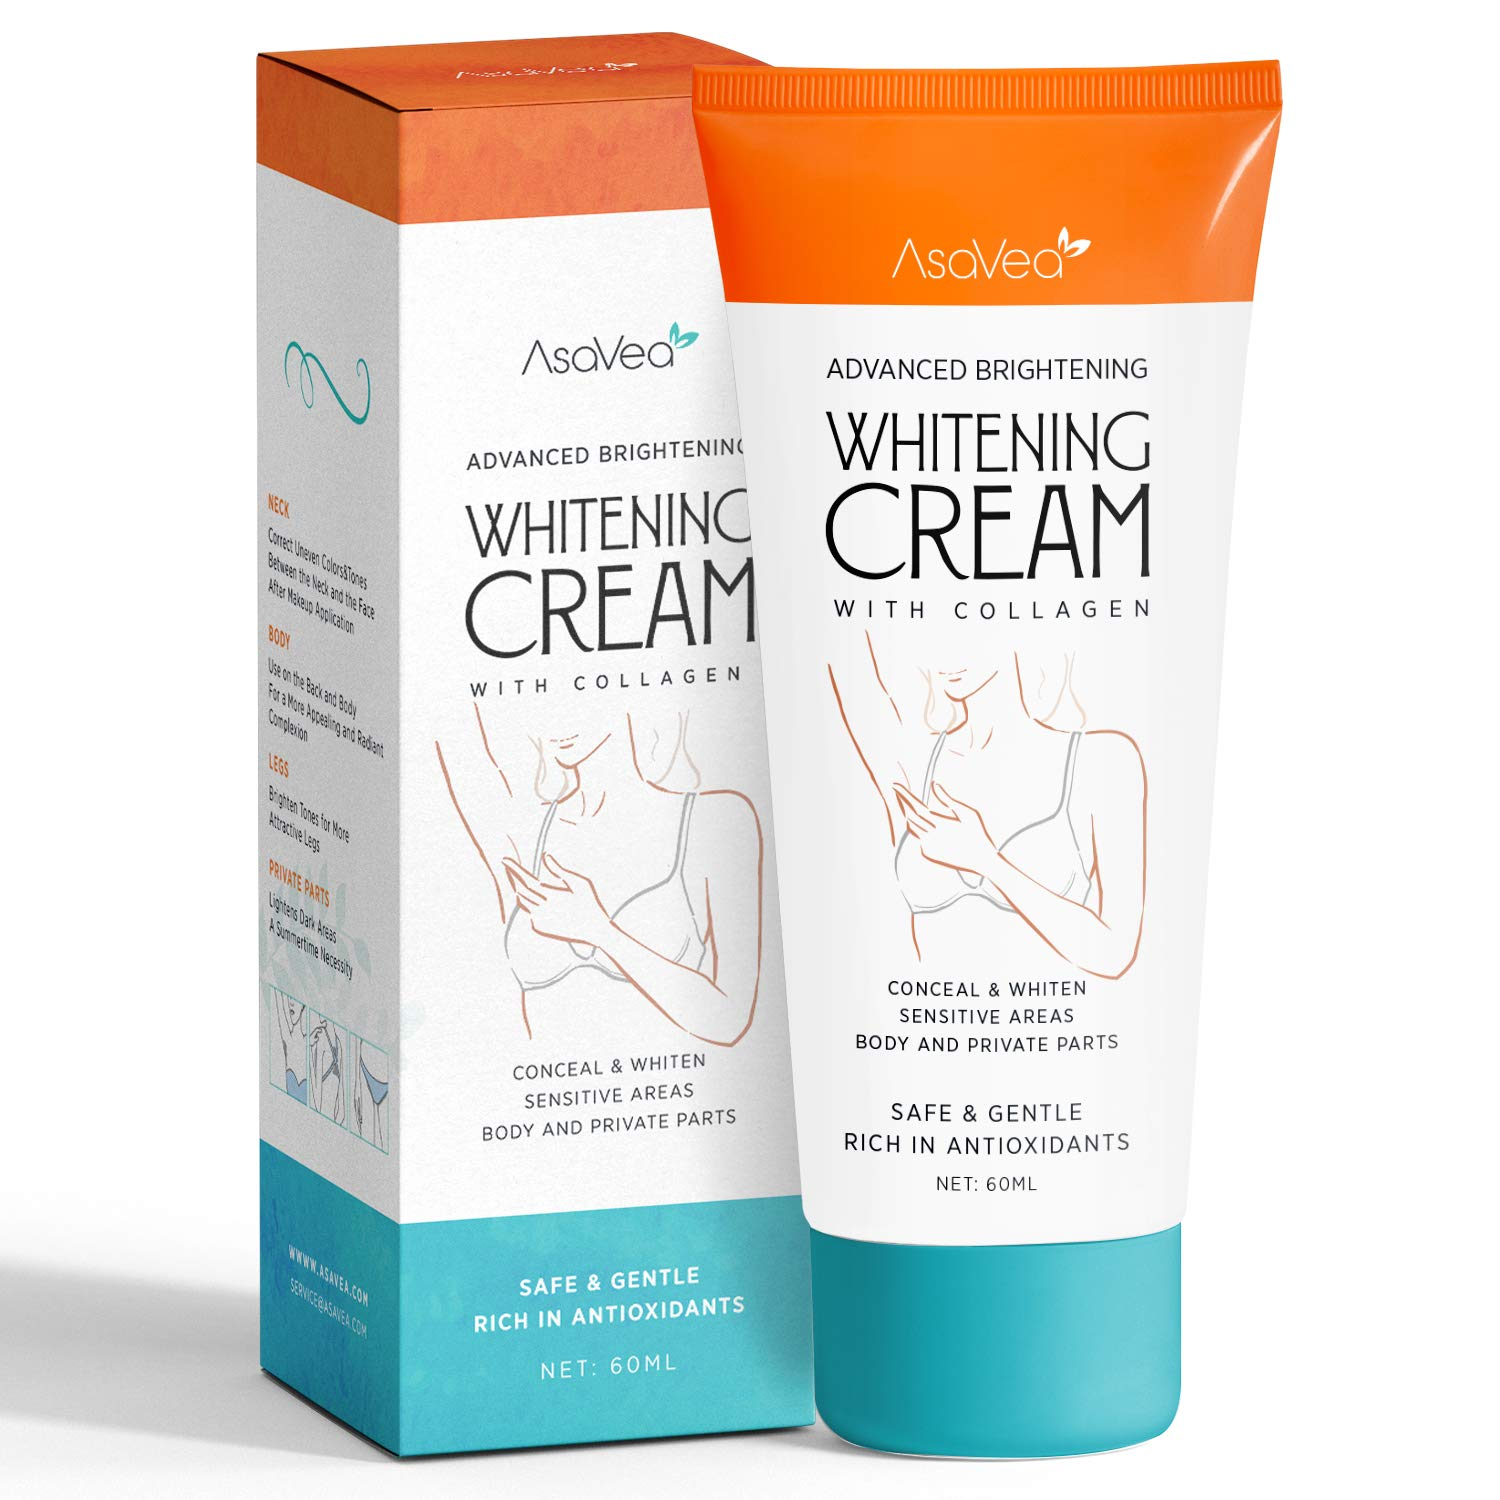 Whitening Cream Armpits Intimate Between